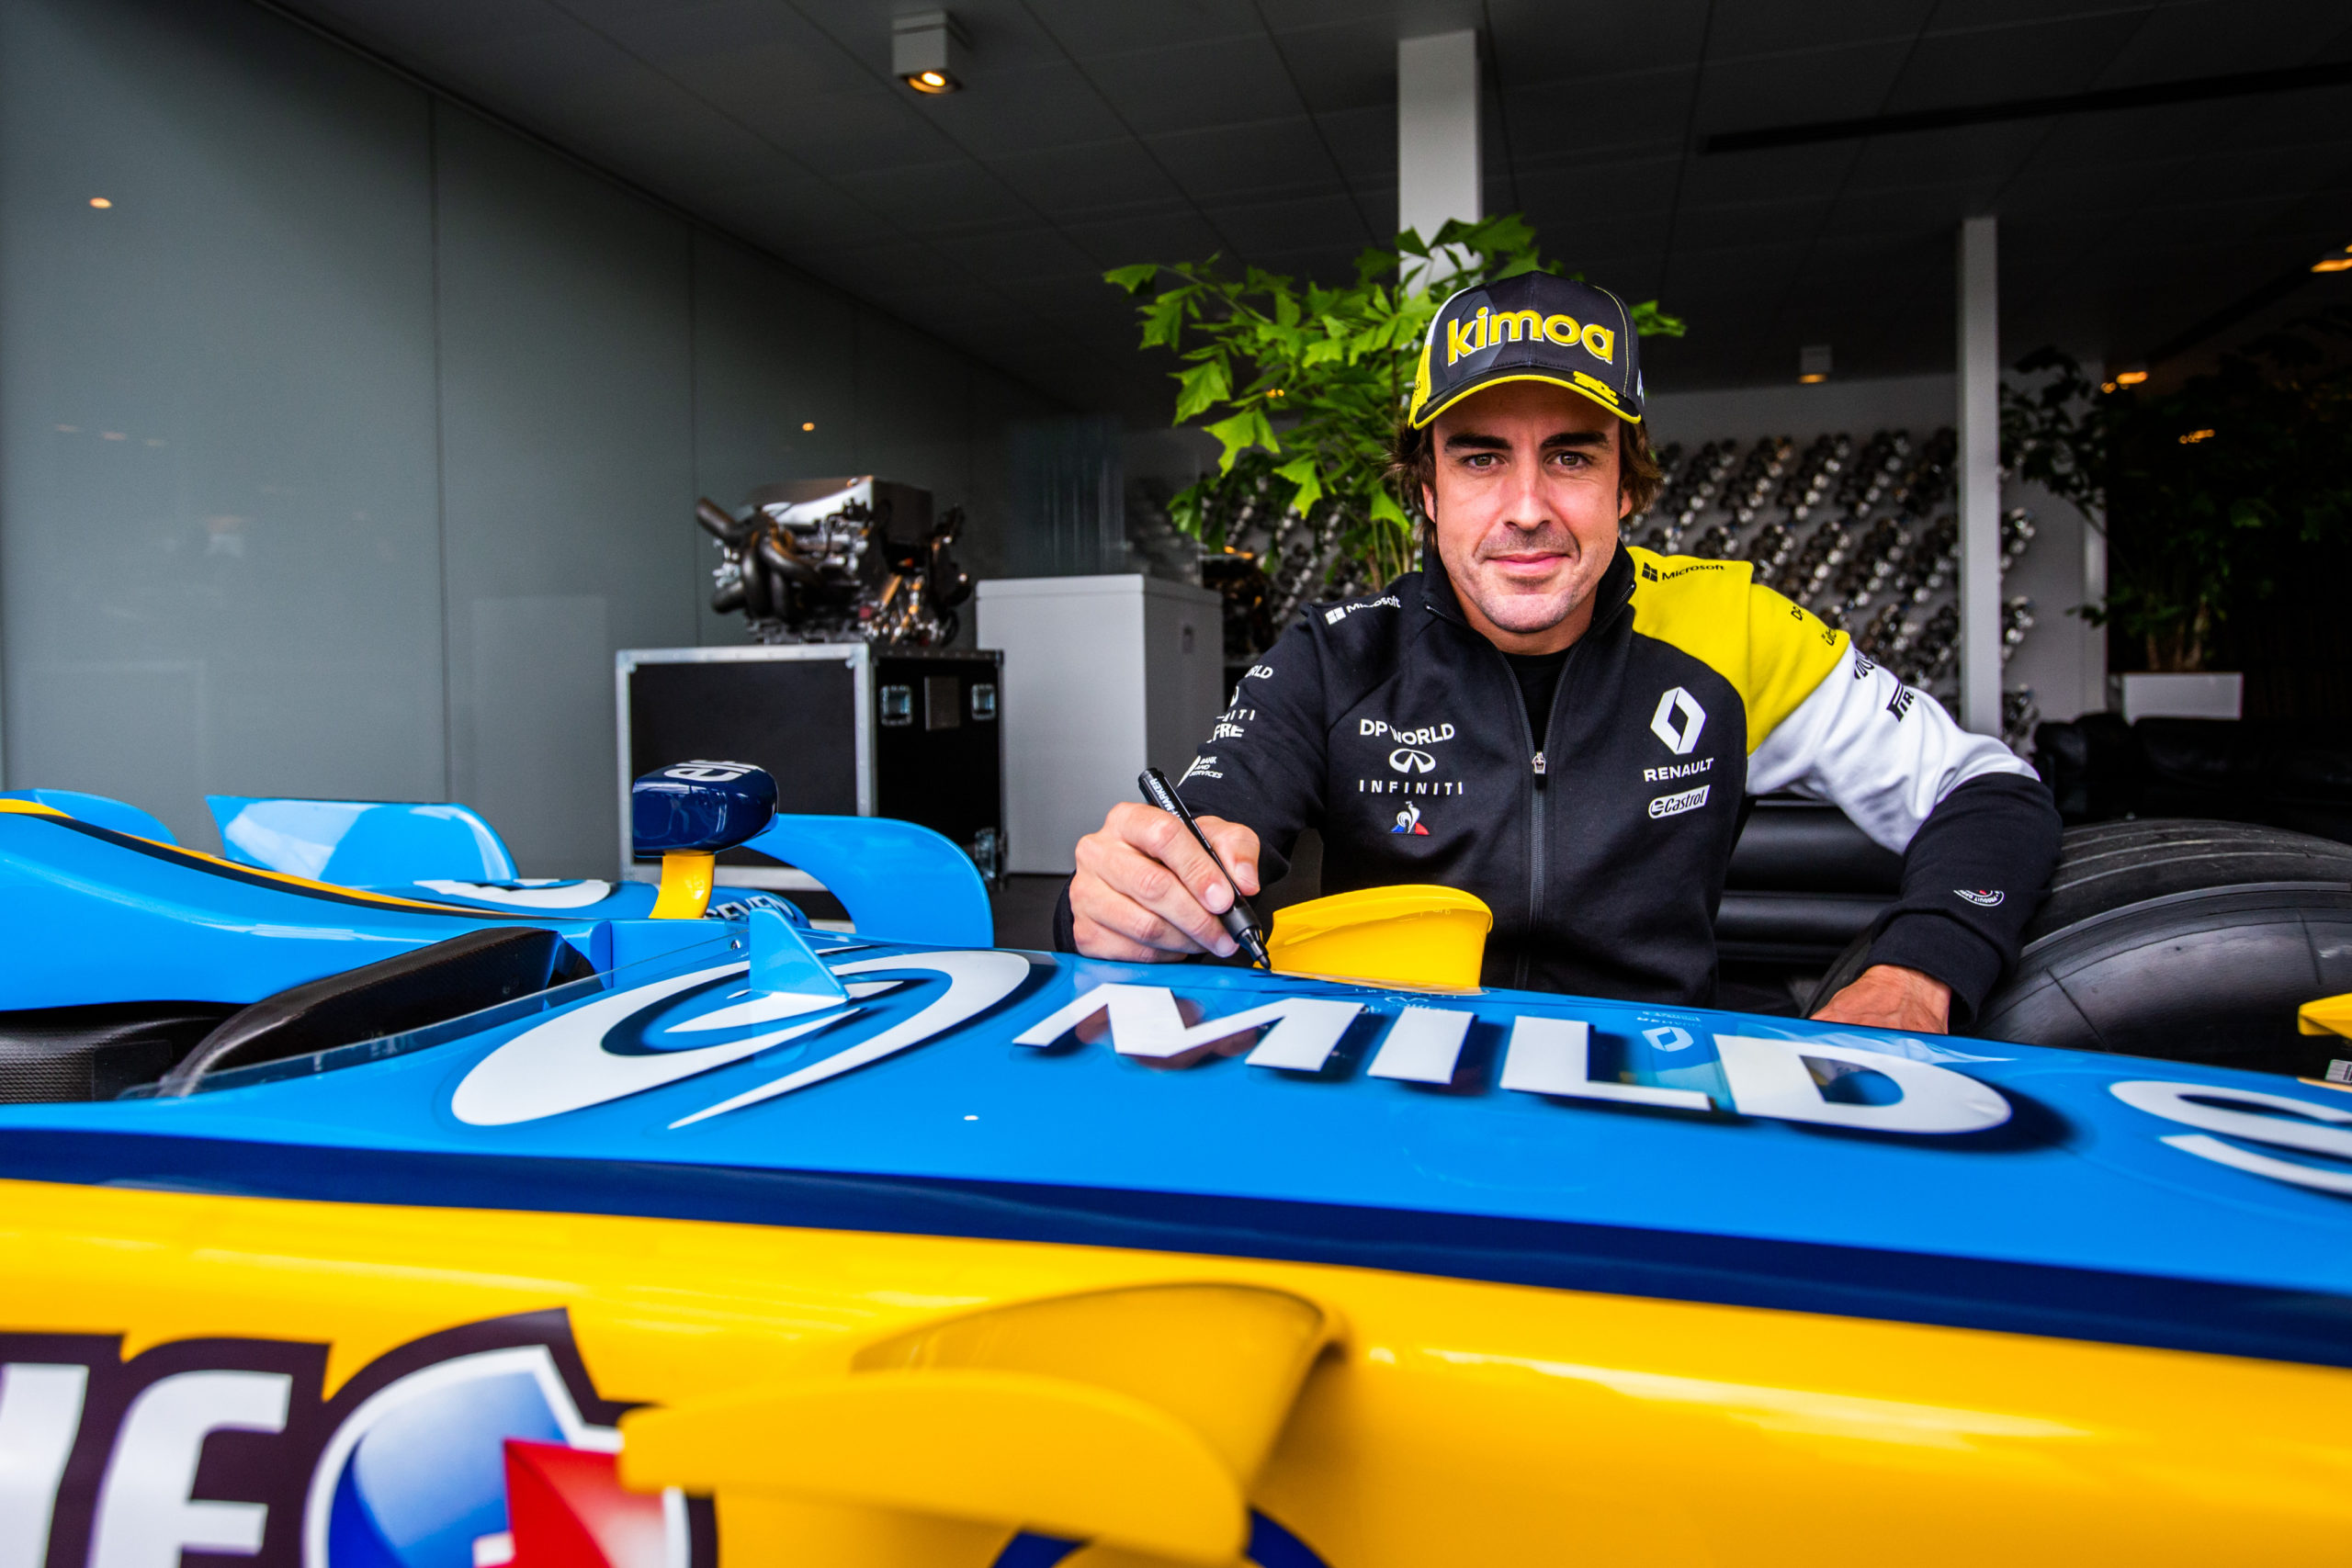 Alonso reflects on 'first day at school' with Renault